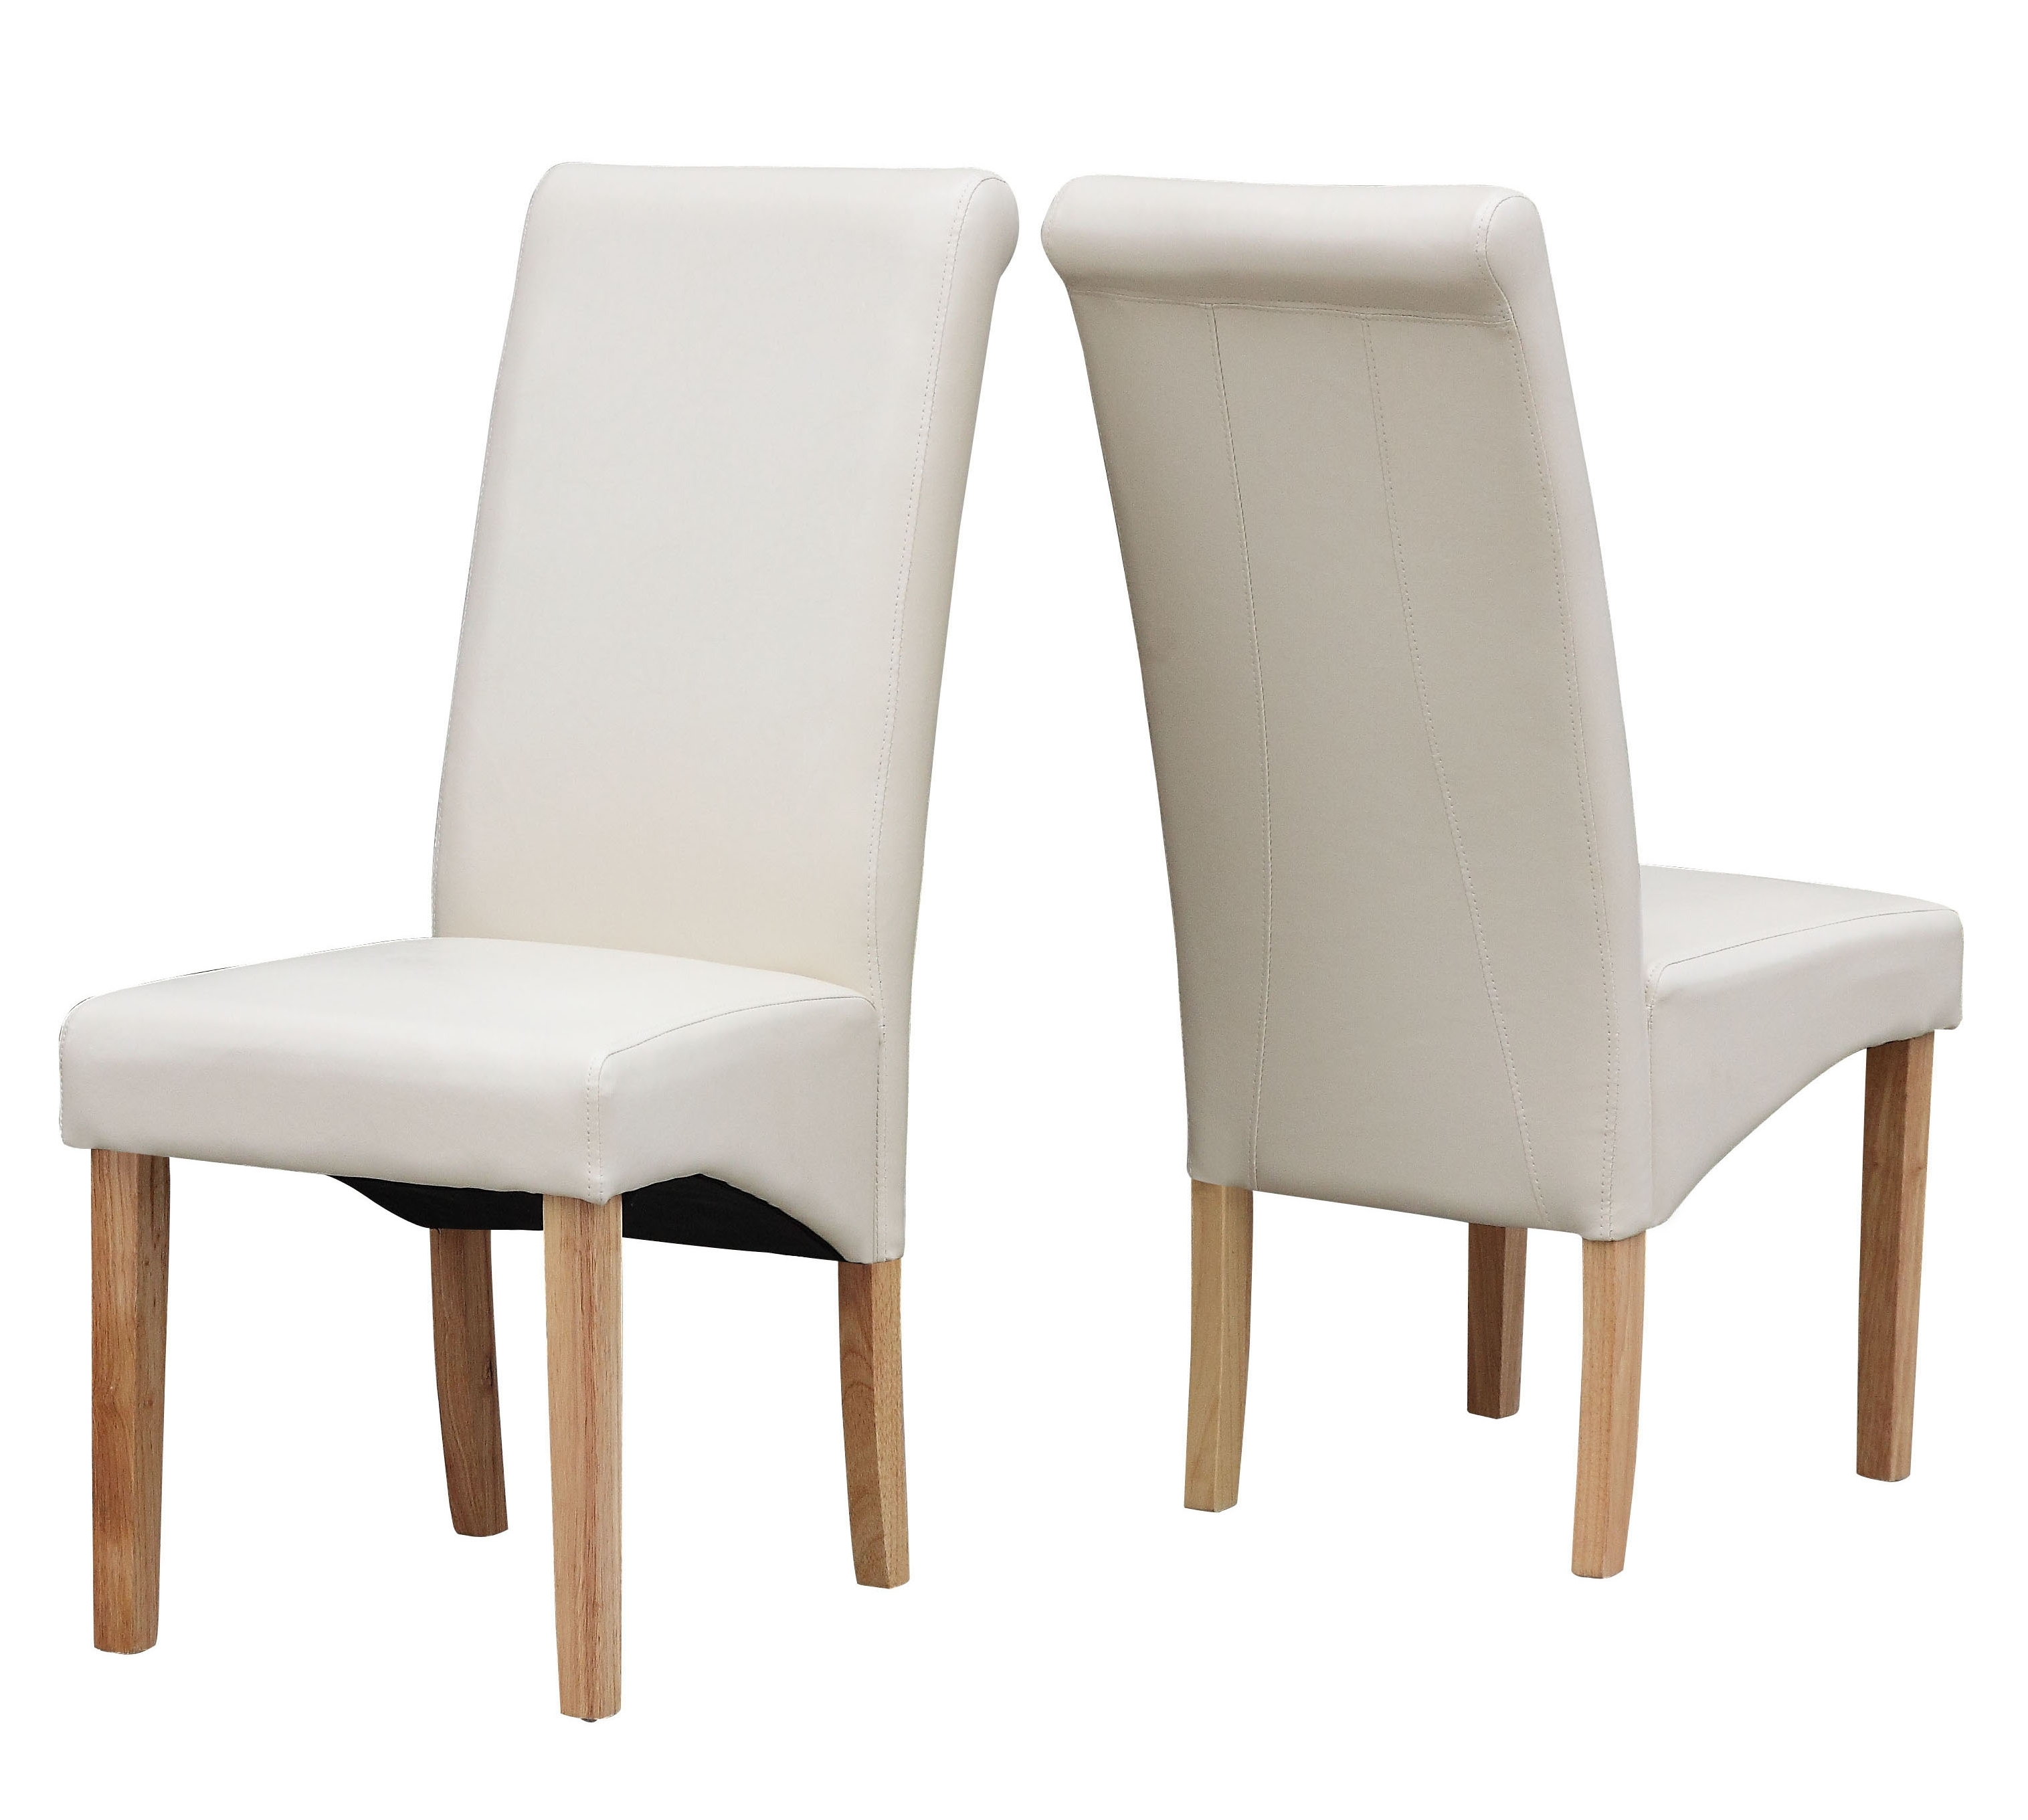 Cream Modern Dining Room Chair Faux Leather Roll Top Intended For Most Recent Cream Faux Leather Dining Chairs (Gallery 3 of 25)